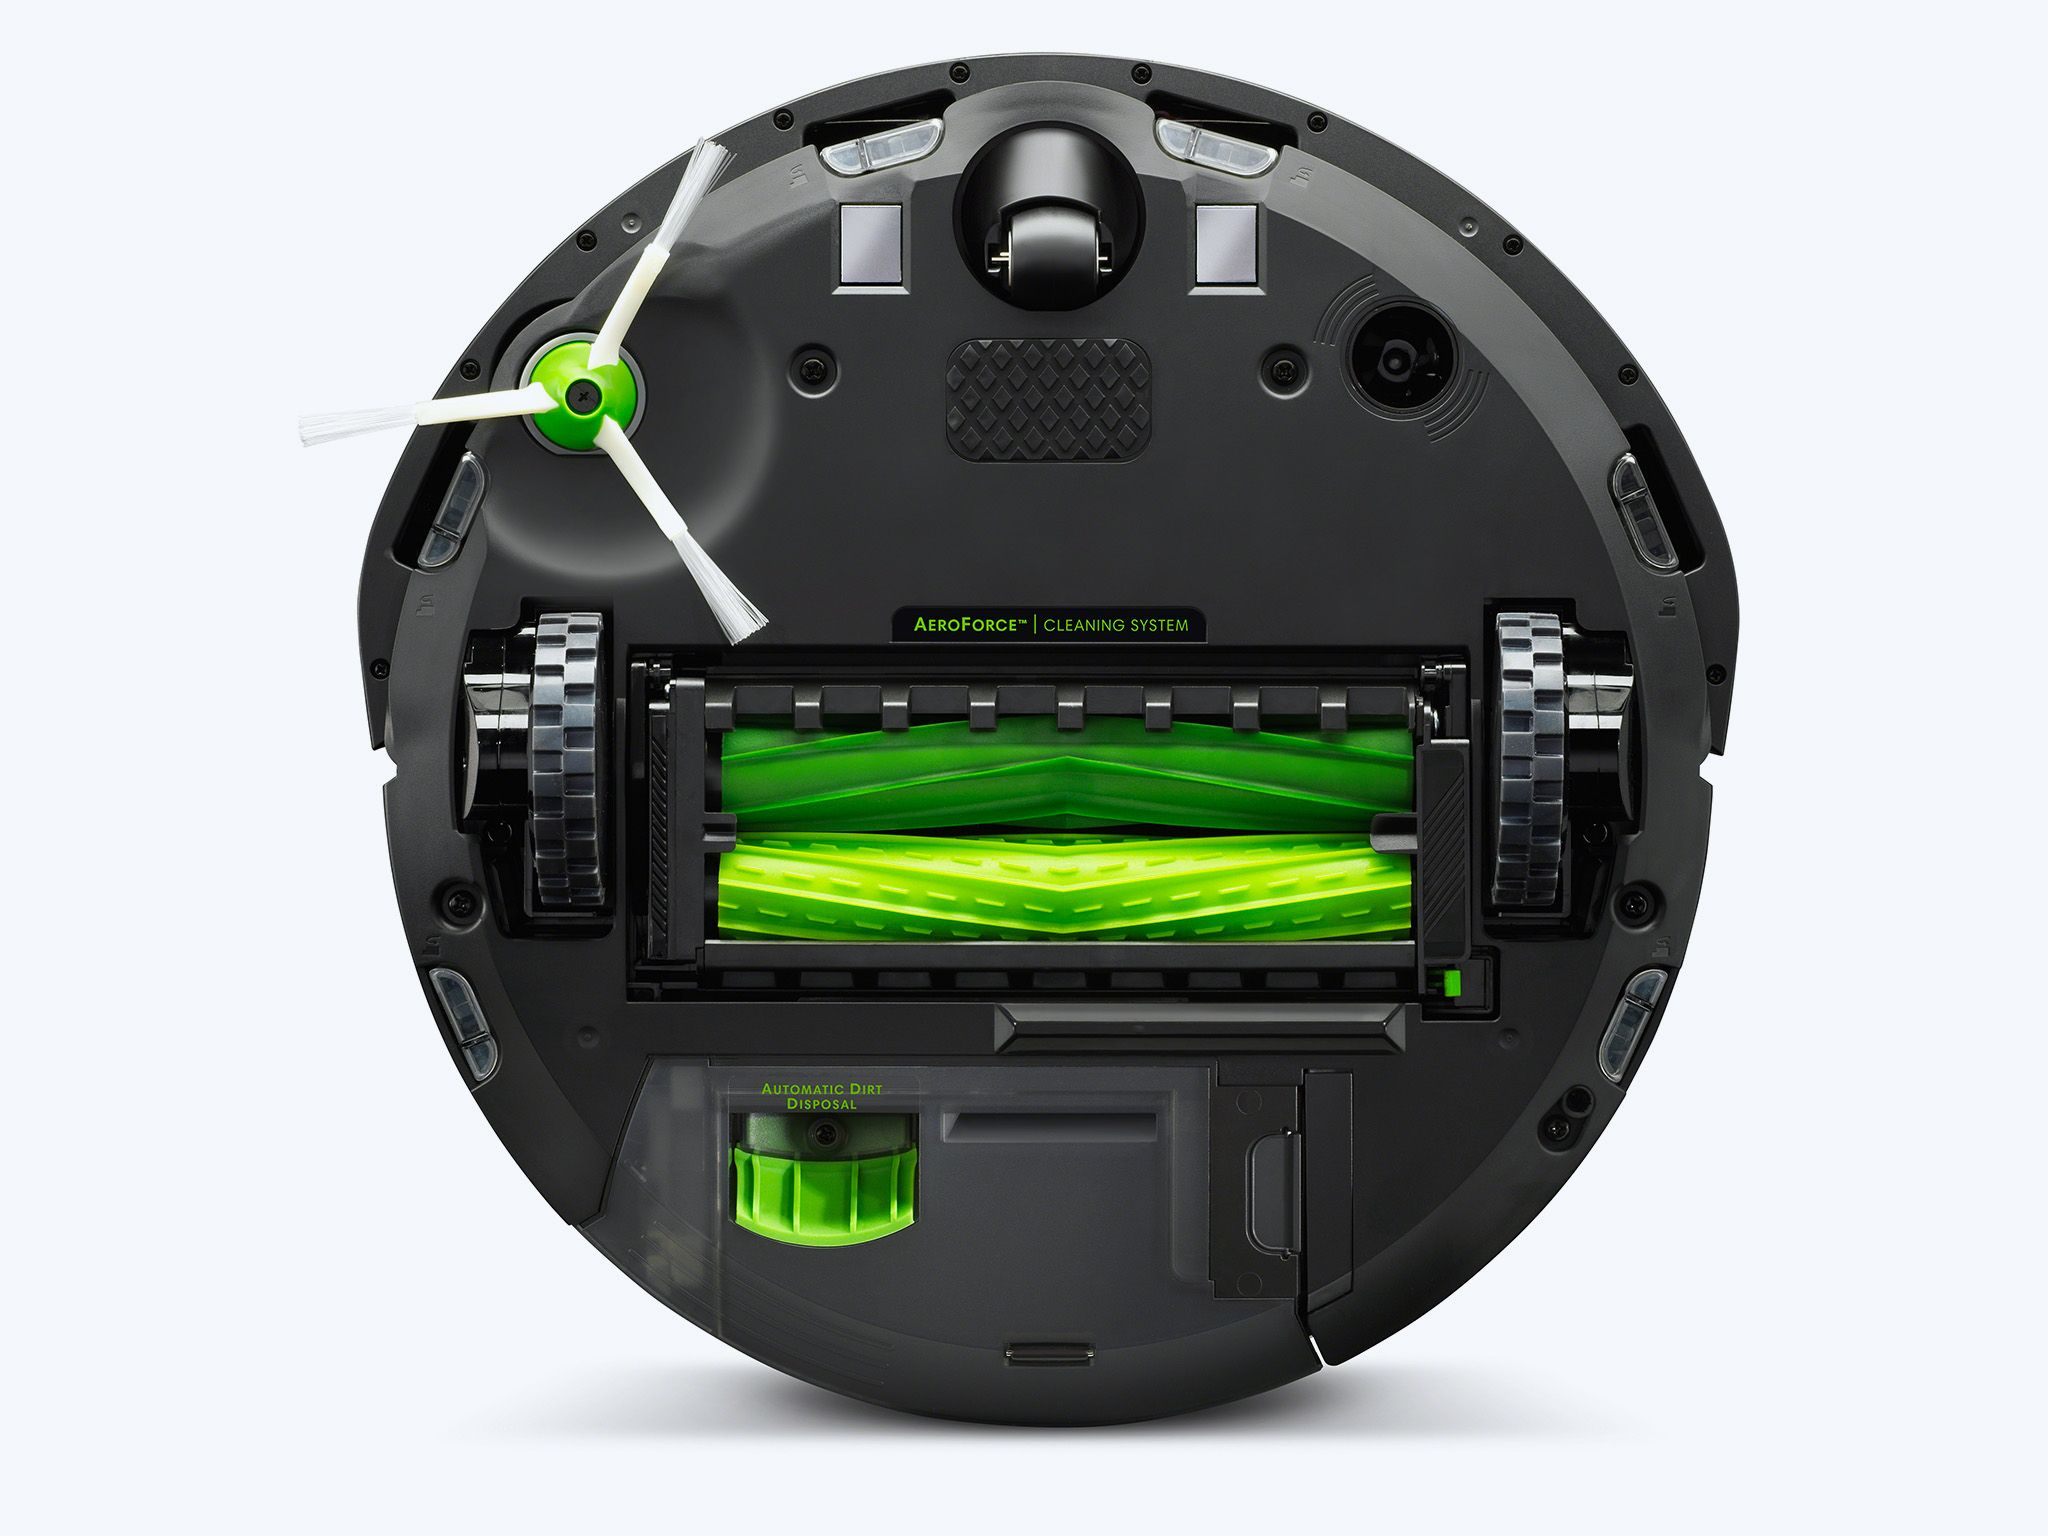 New Roomba I7 Has Persistent Maps Selective Room Cleaning And A Smartphone Dock Built Inside Mans Prosthetic Arm Automatic Dirt Disposal Ieee Spectrum